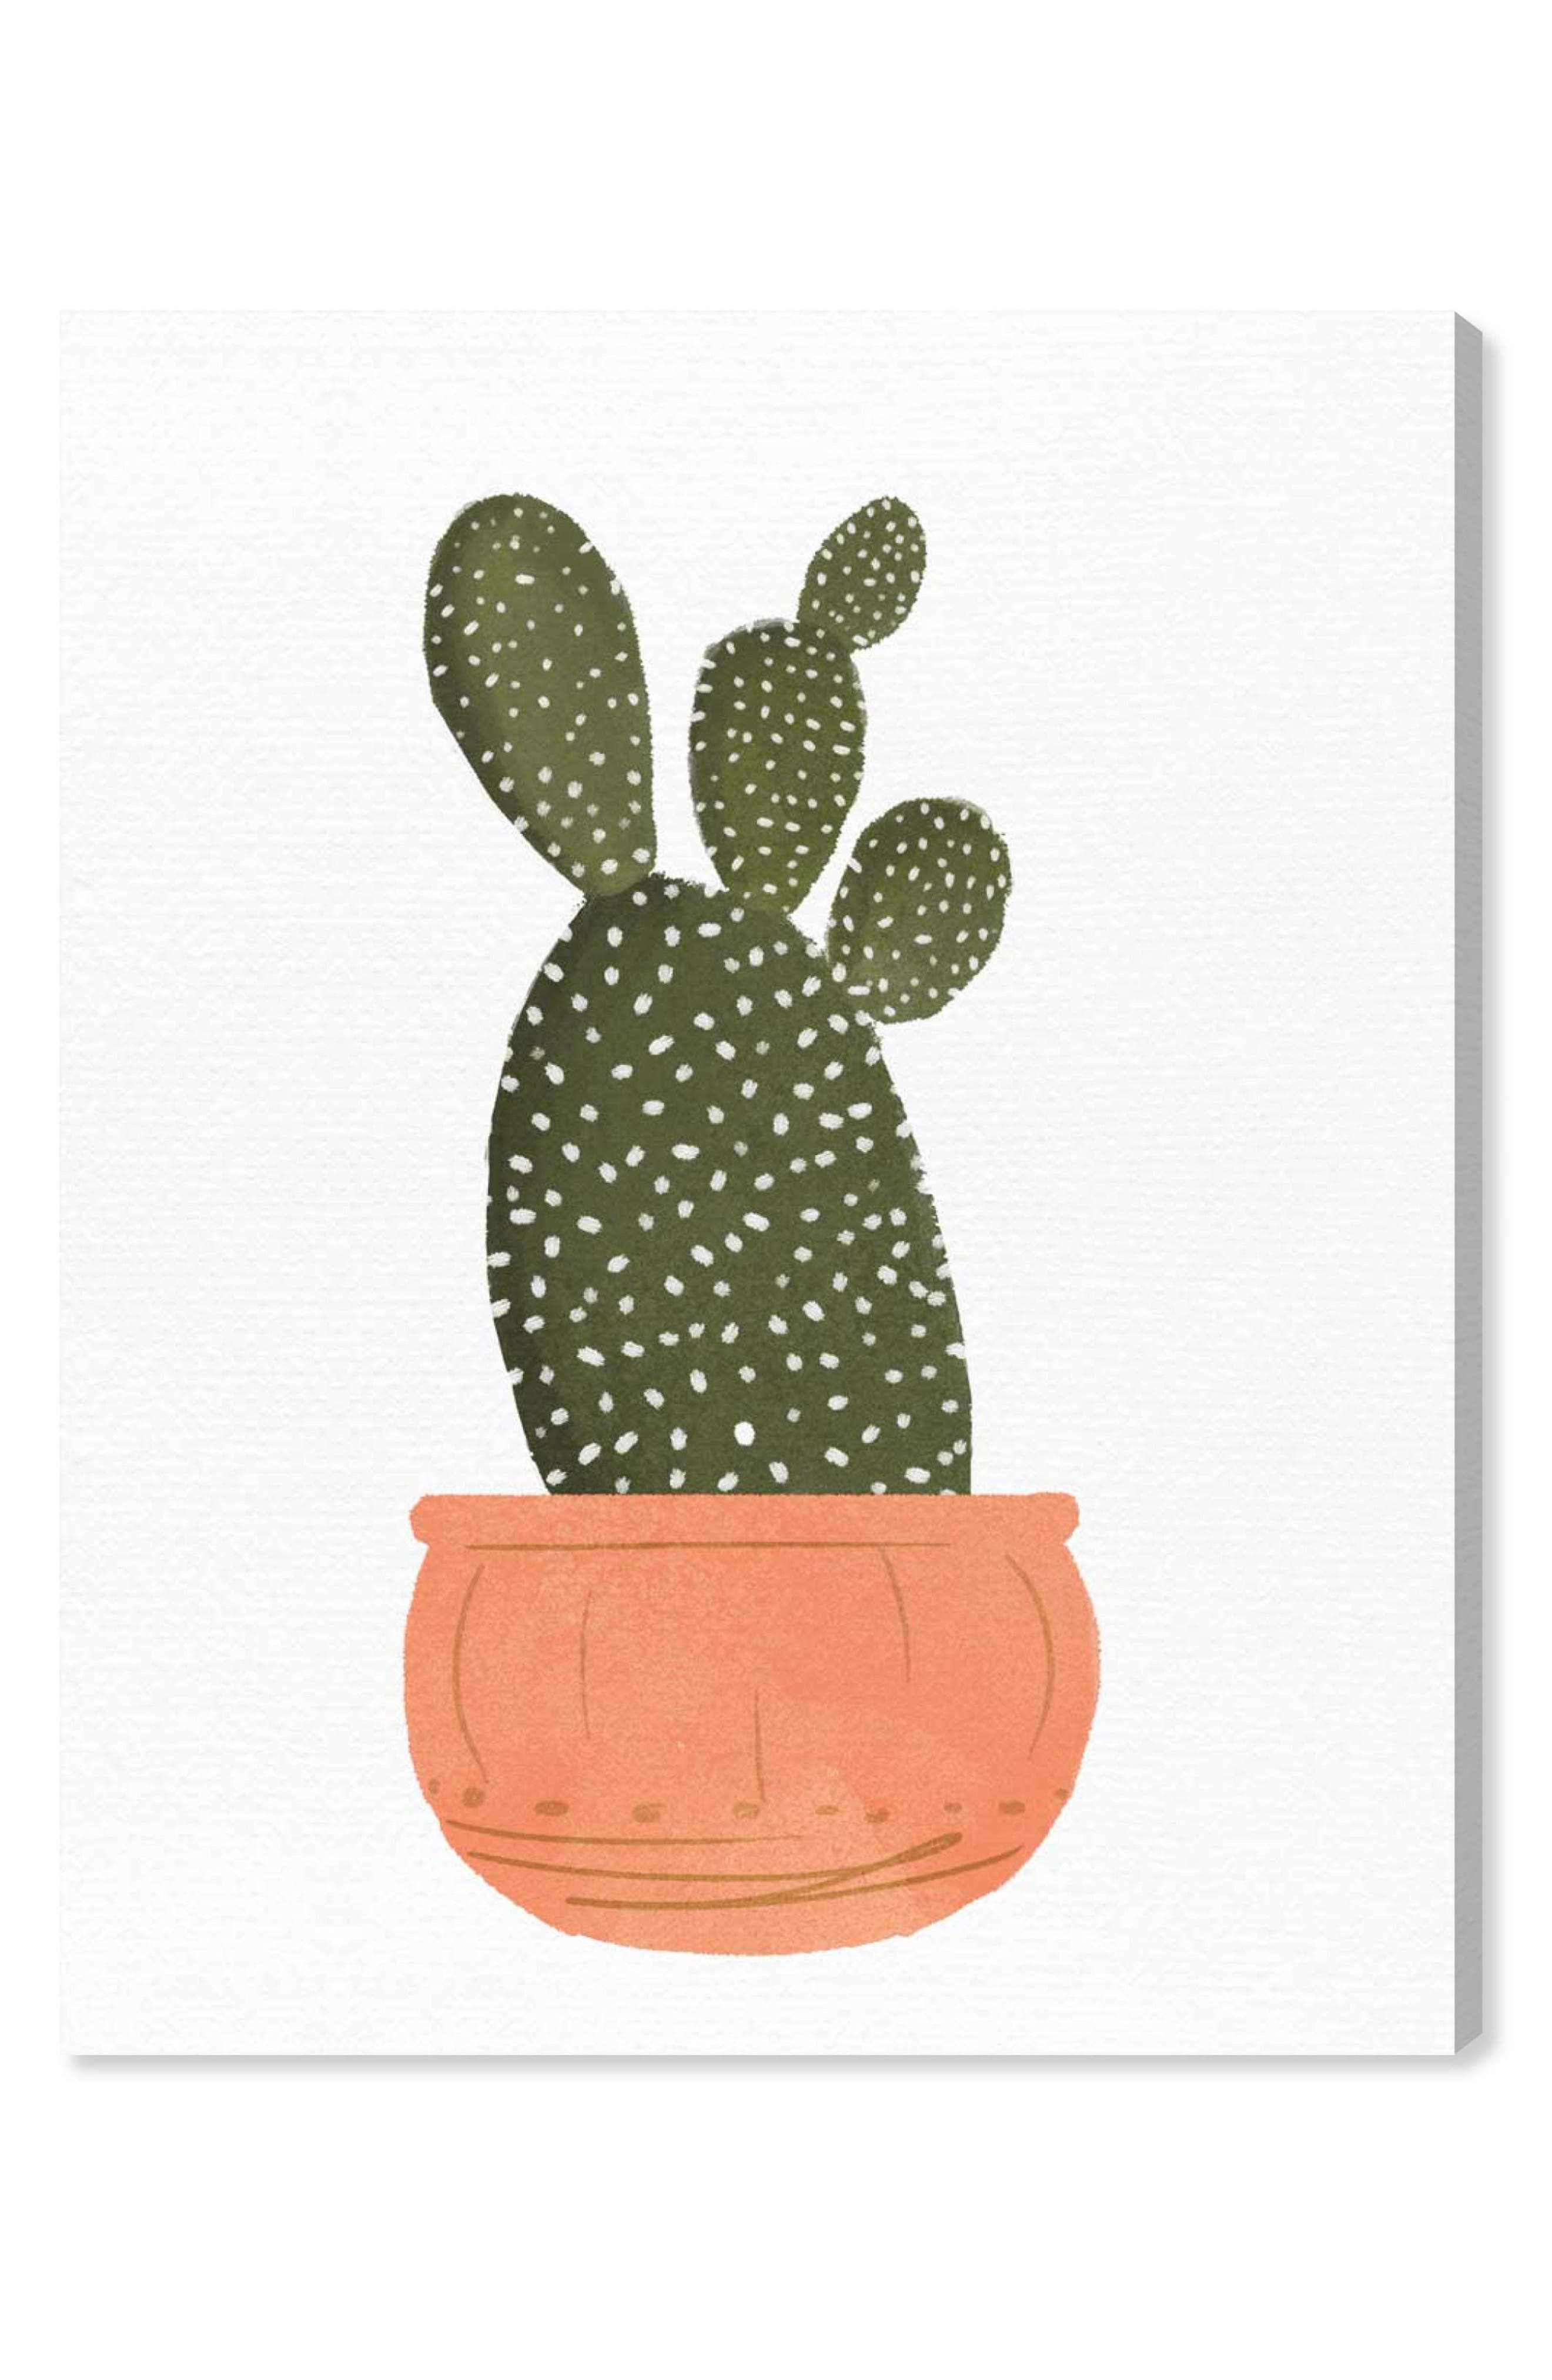 Alternate Image 1 Selected - Oliver Gal Cactus Coral II Canvas Wall Art